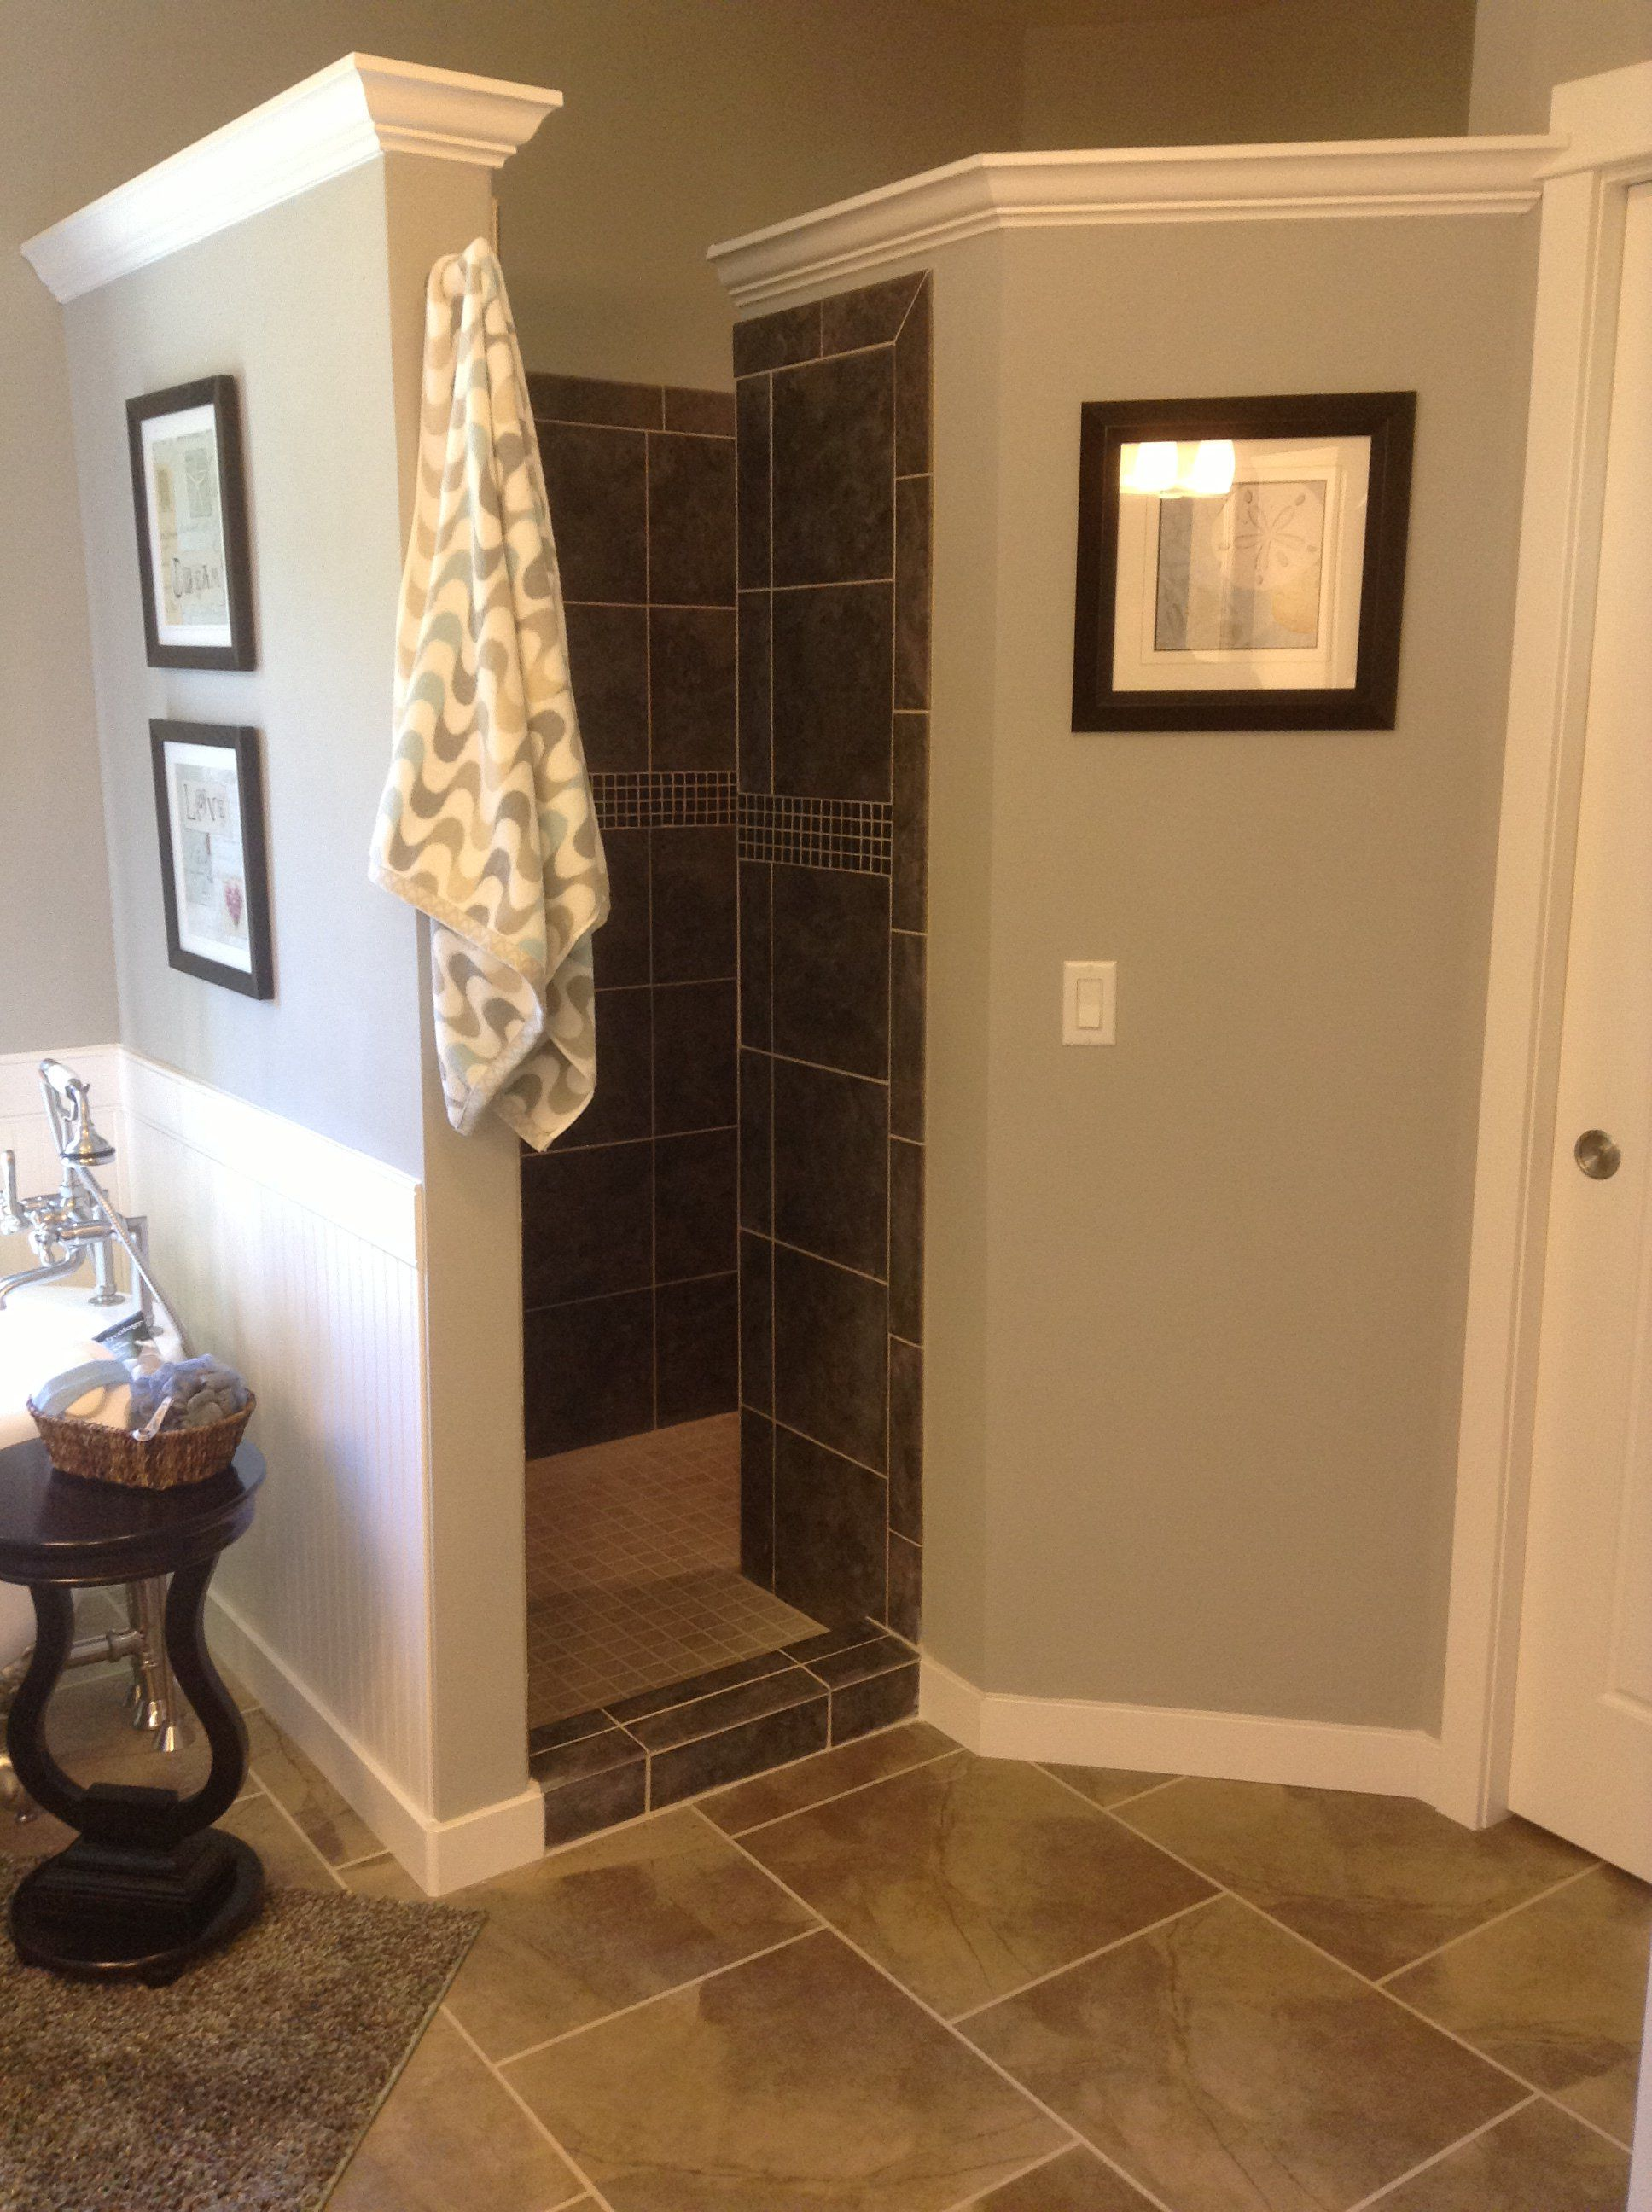 Walk in shower no door to clean so practical 210 for Bathroom entrance doors